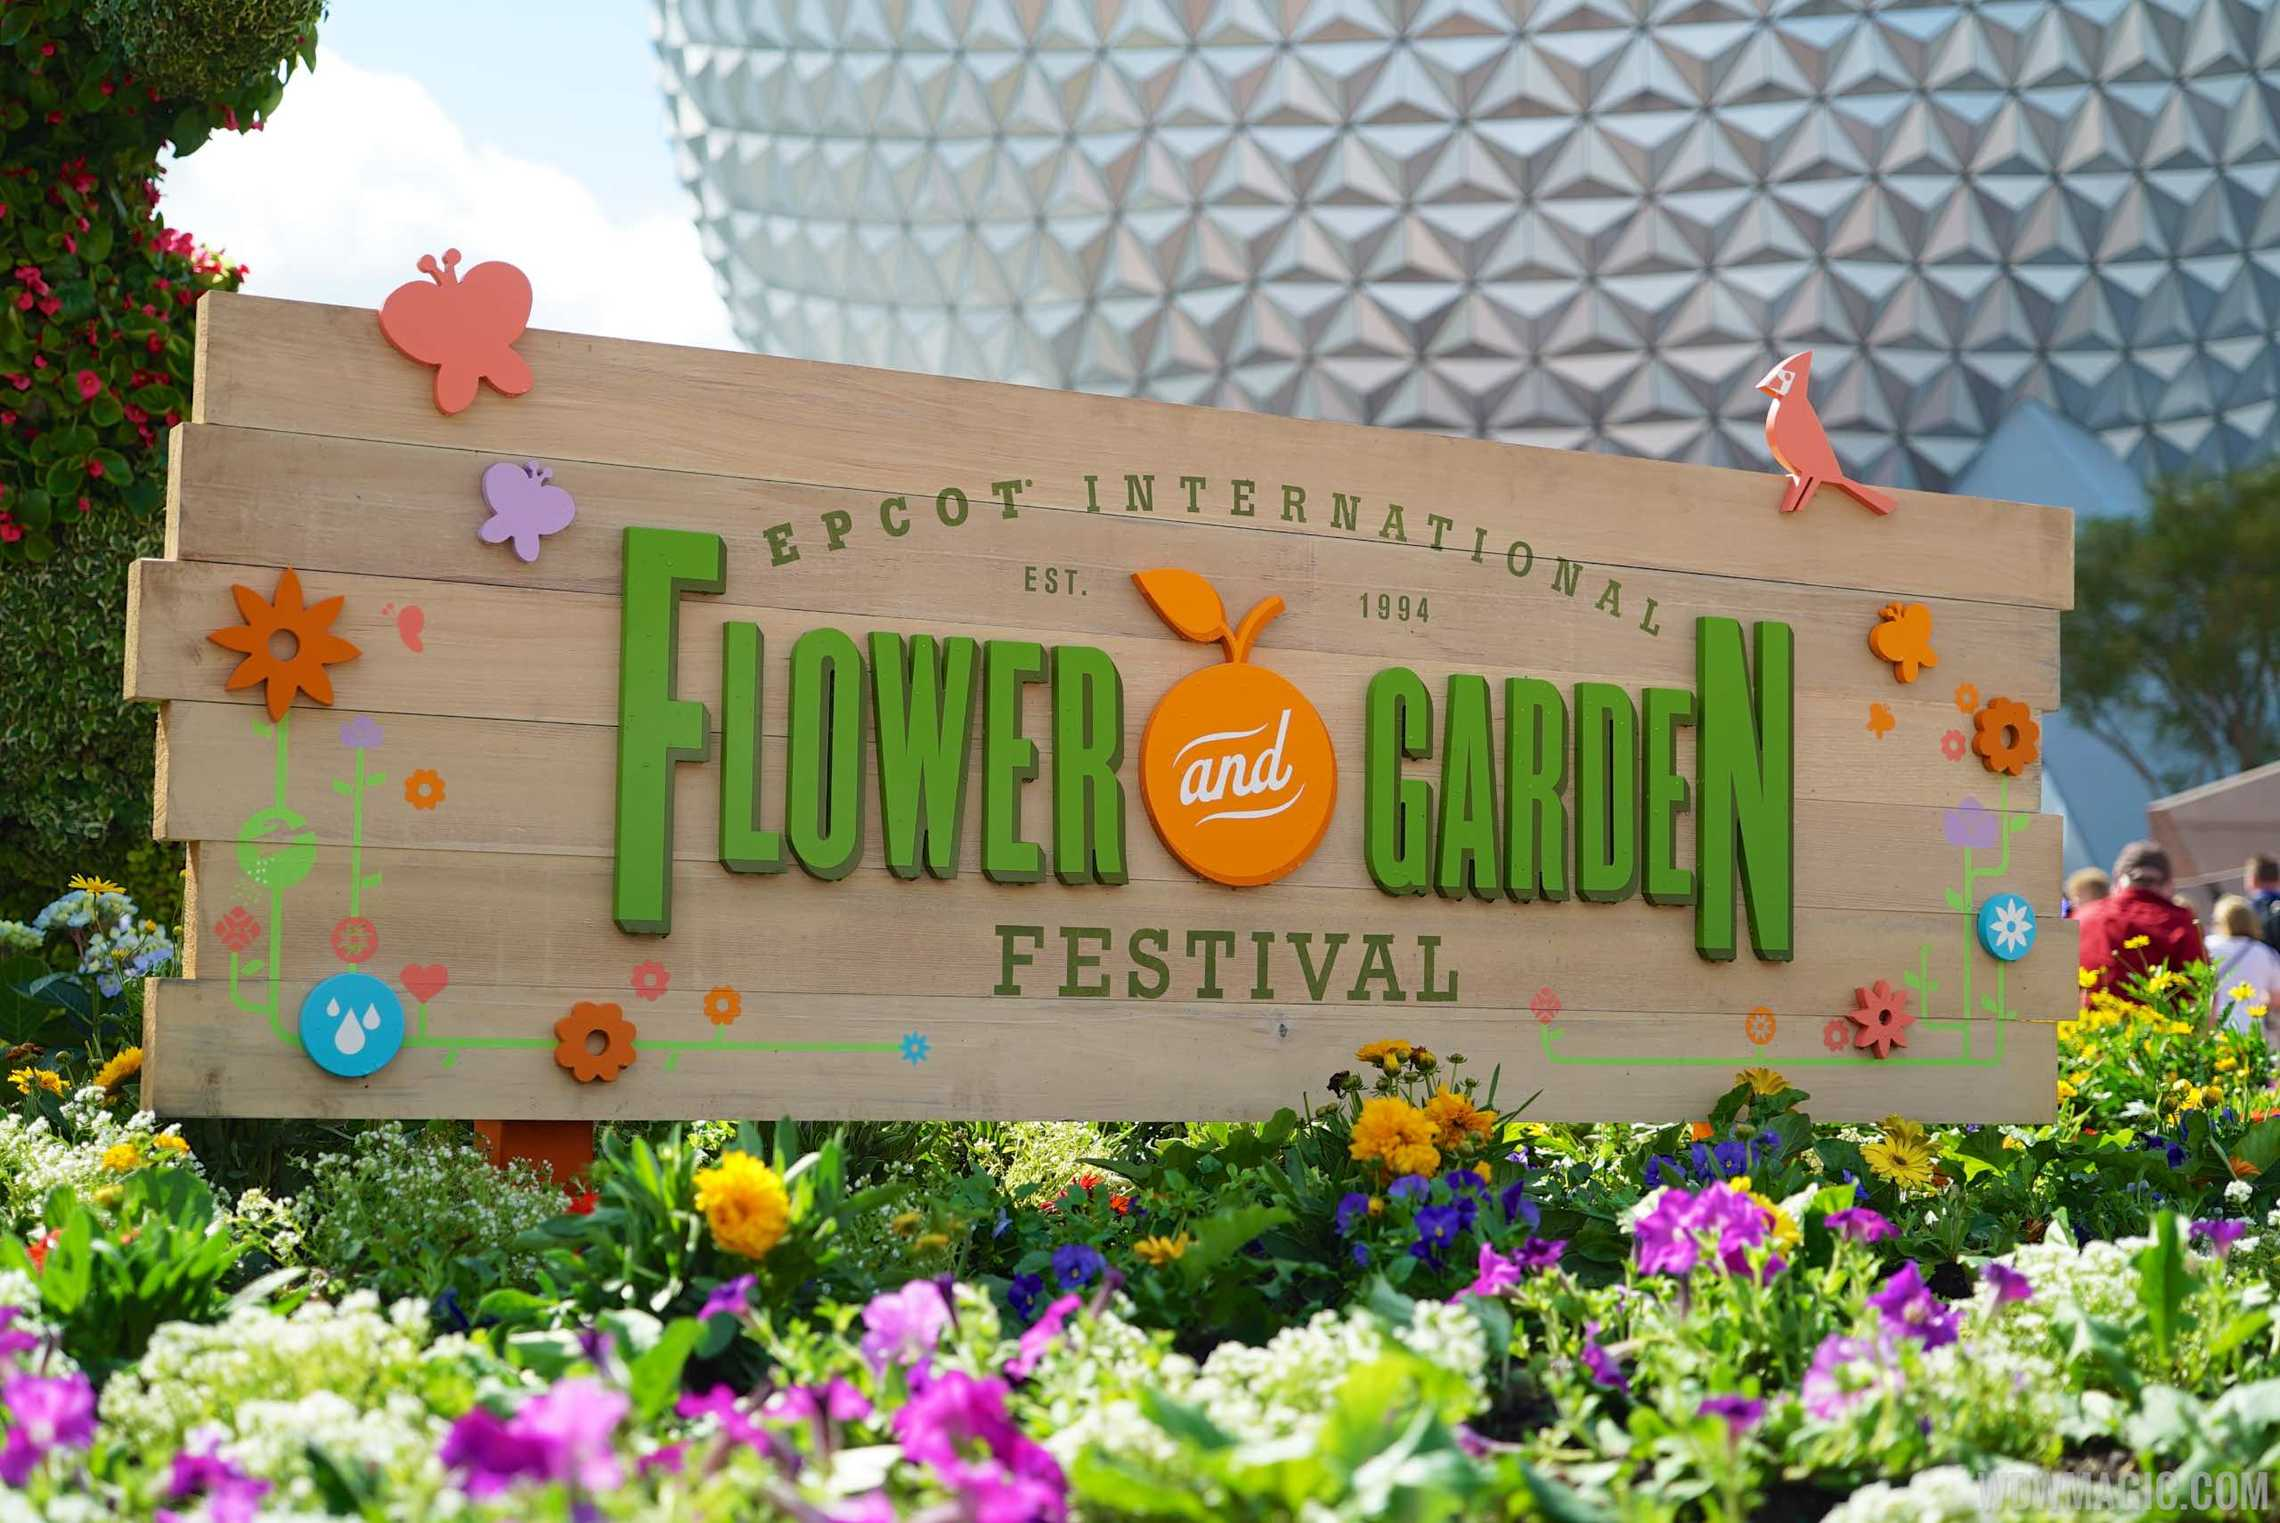 2015 Epcot Flower and Garden Festival - Main entrance sign